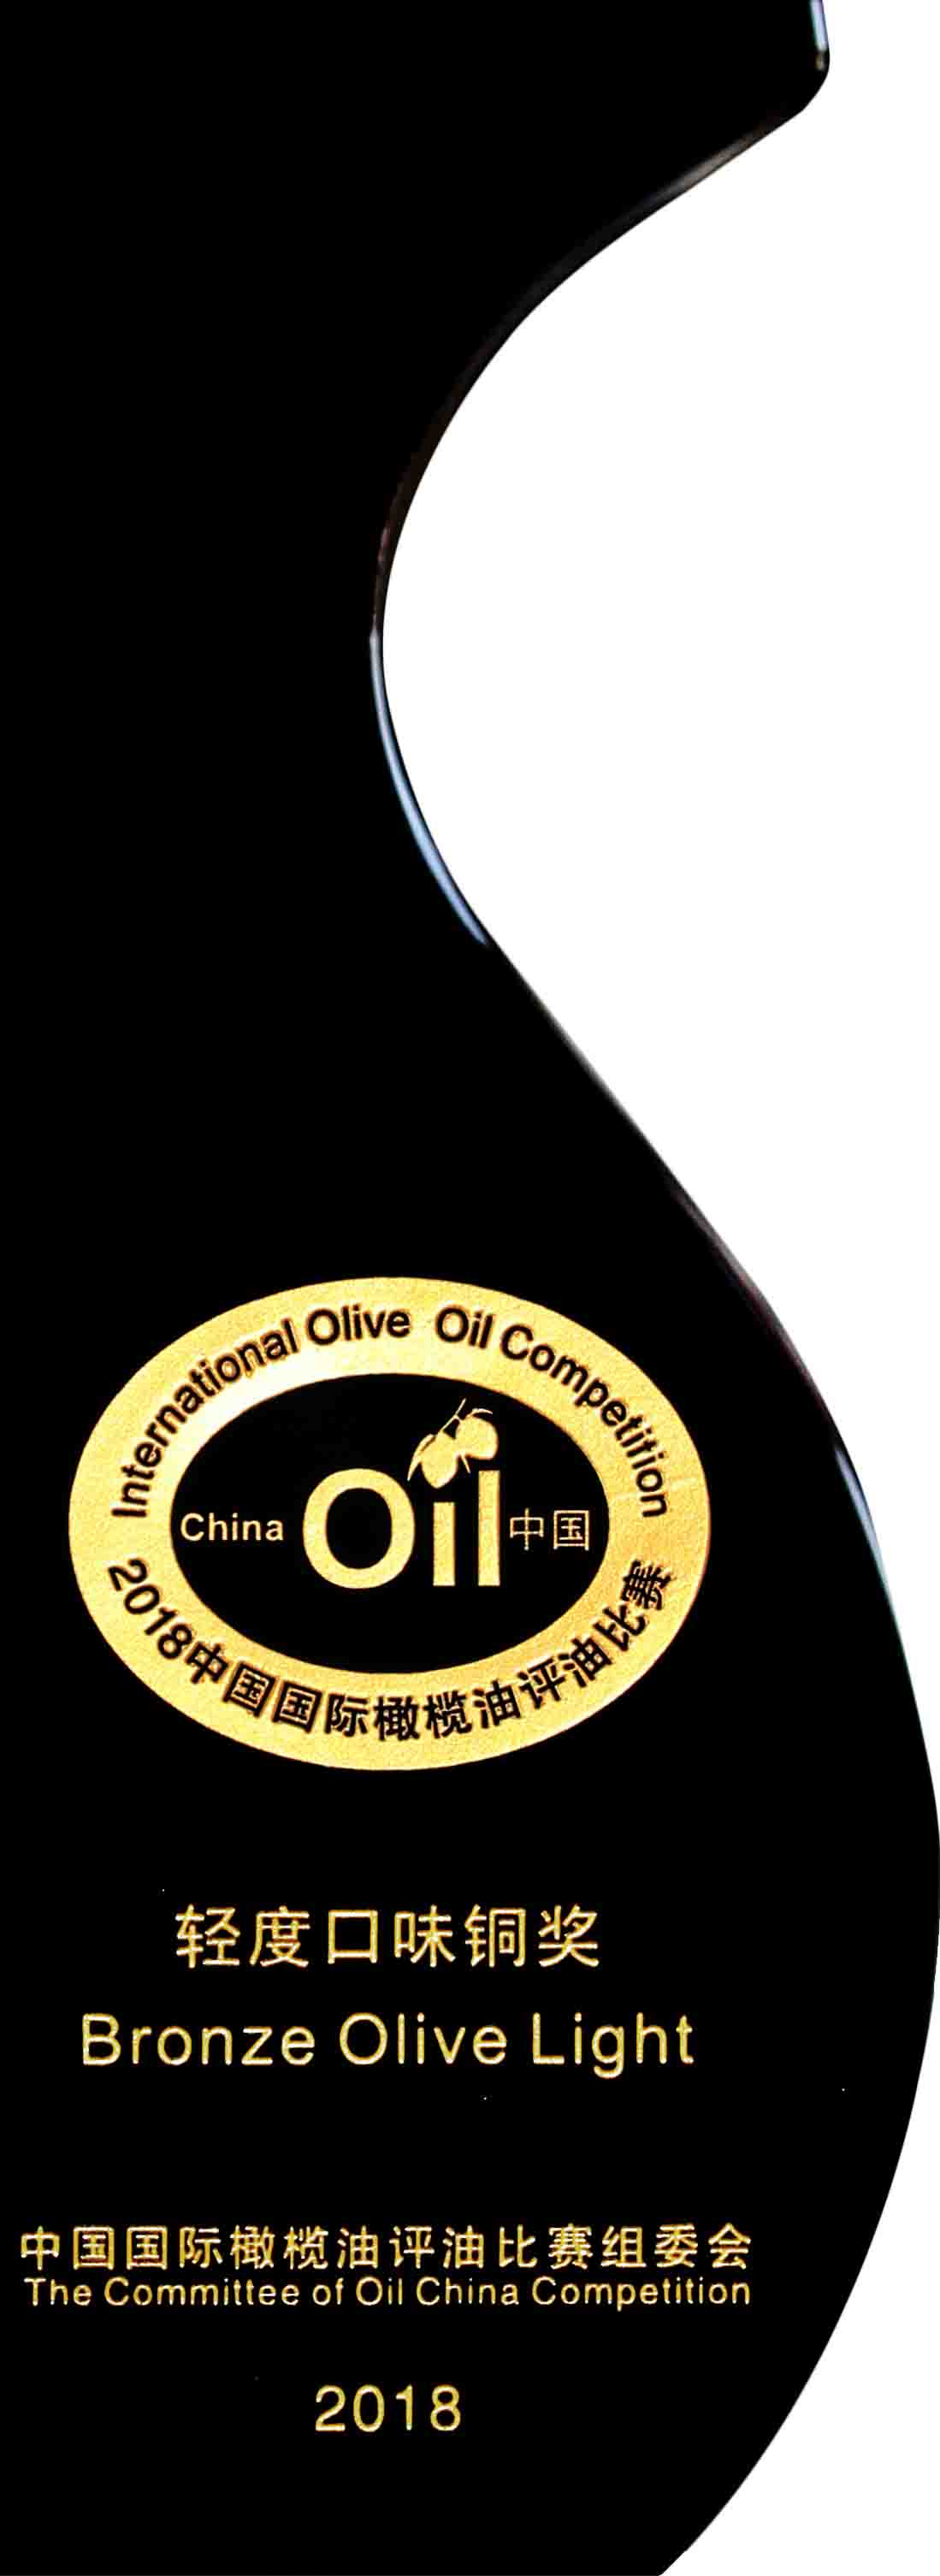 China International Olive Oil Competition 2018 Trophy